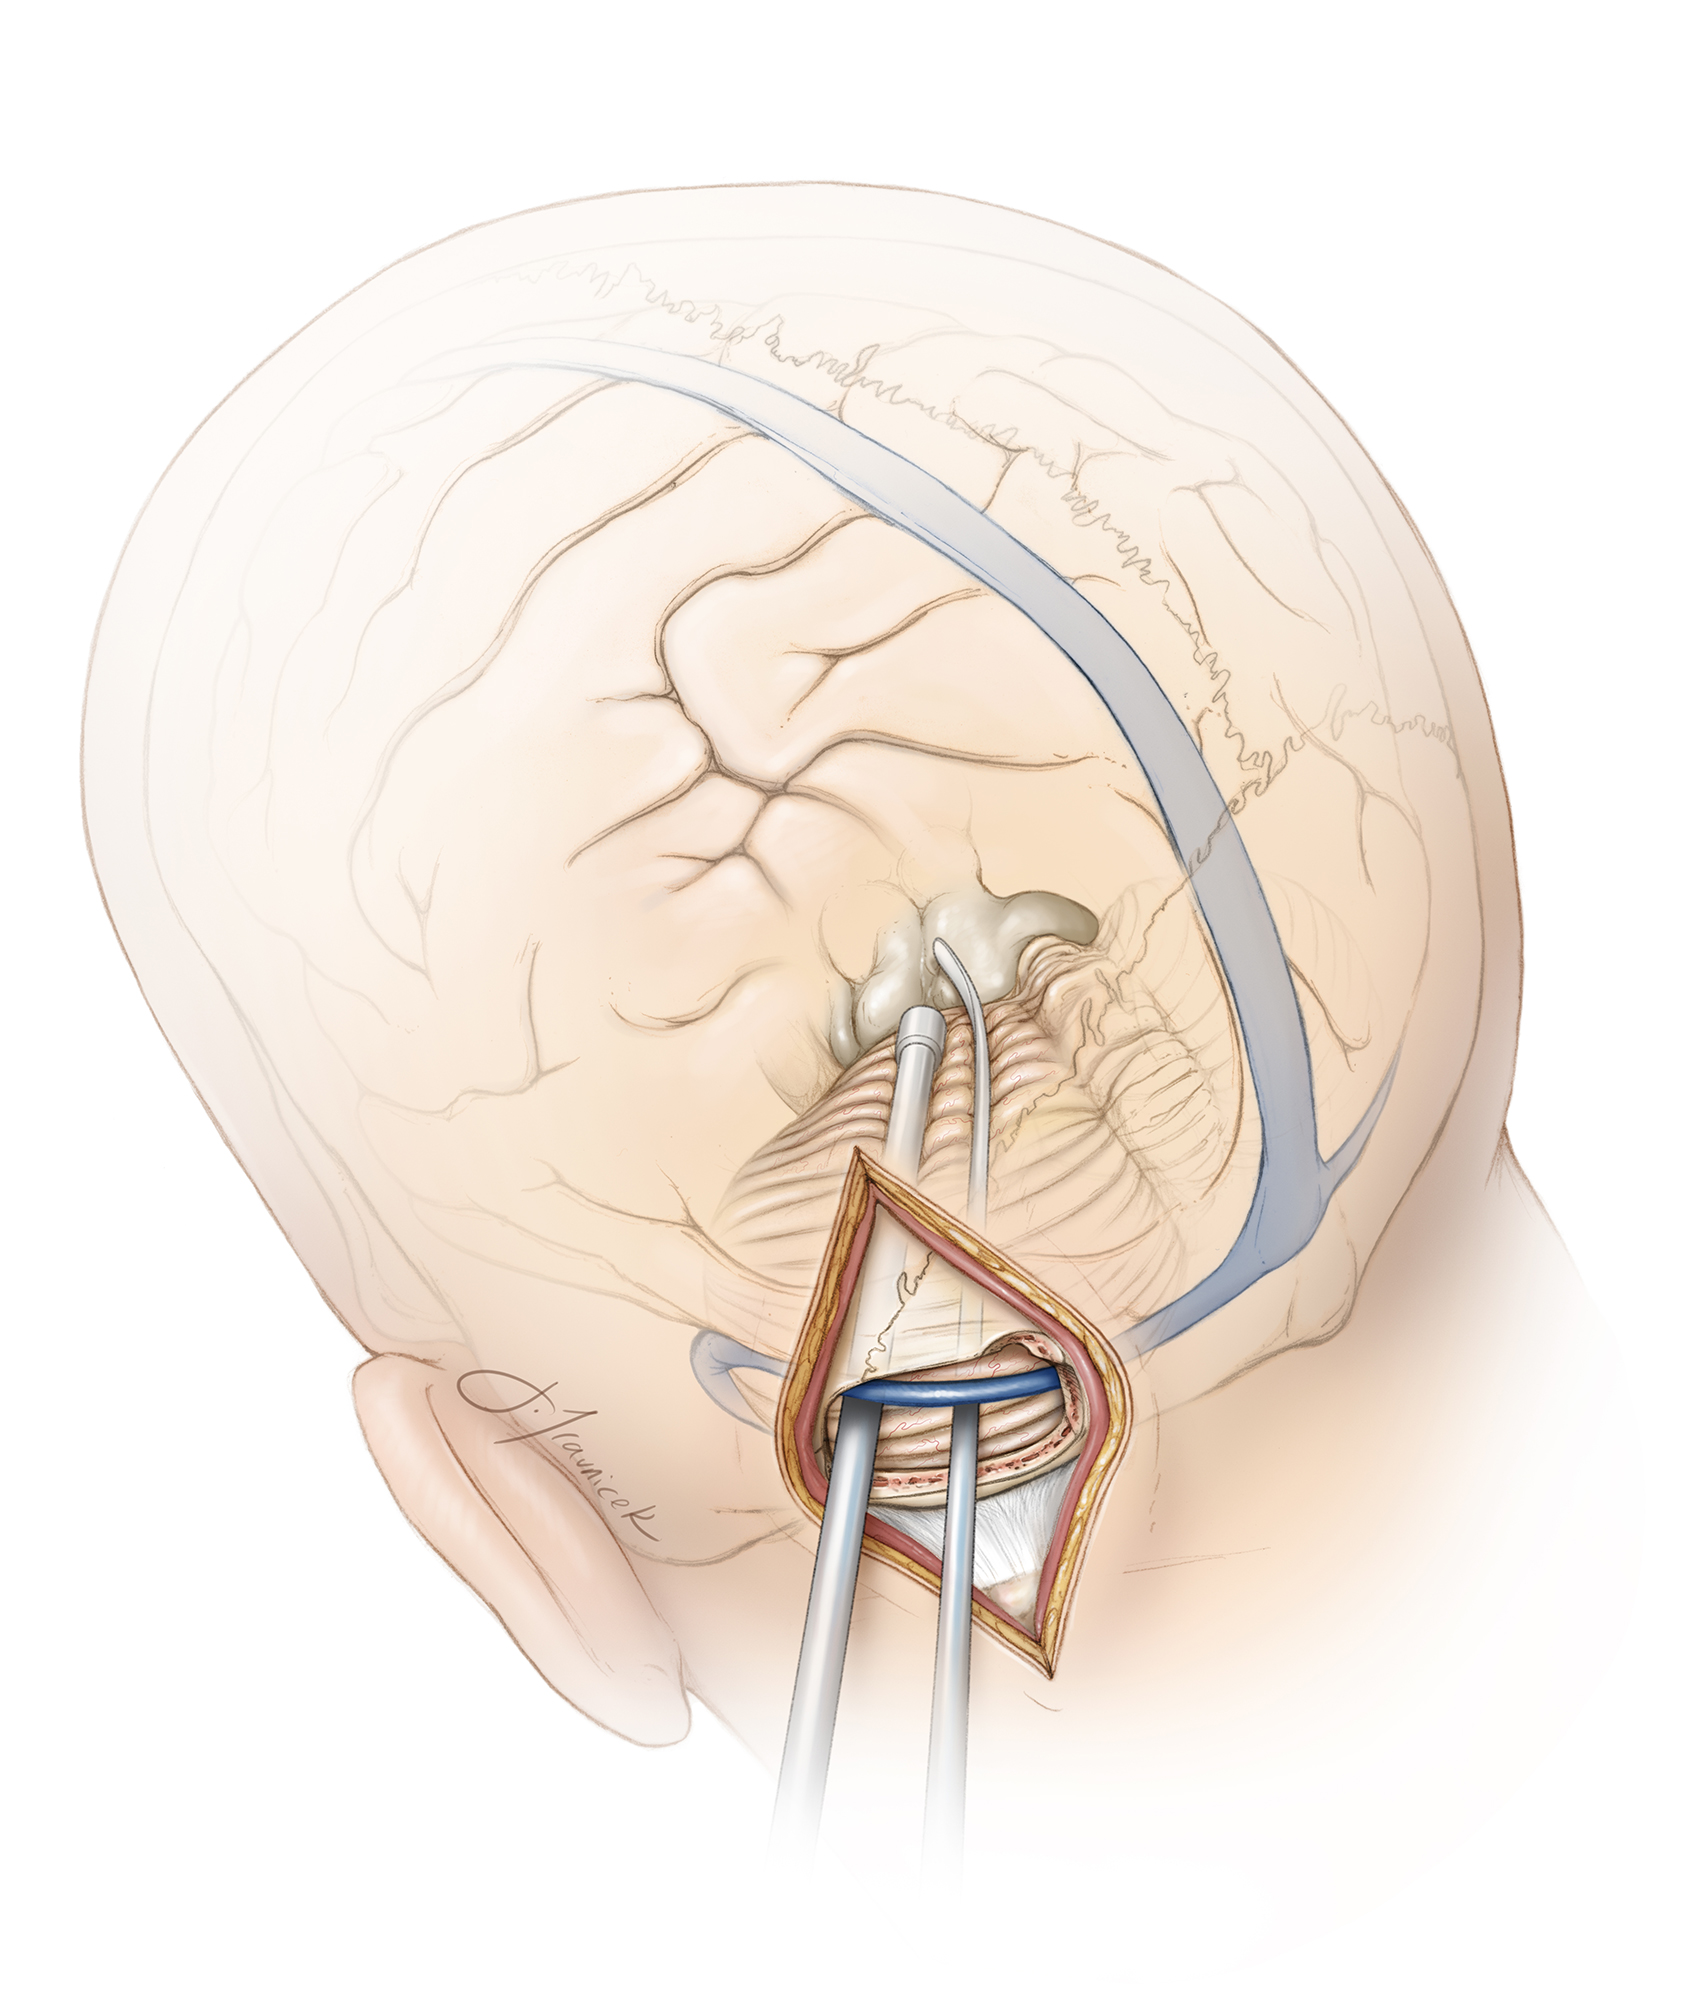 """Figure 2: The """"cross court"""" paramedian trajectory to midline dorsal mesencephalic and pontine tumors is beneficial since the tentorial surface of the cerebellum is highest along its anteromedial apex and slopes down laterally. Therefore, the lateral paramedian operative corridor provides a more inferior trajectory as compared with the midline trajectory to access the inferior extension of pontine tumors."""